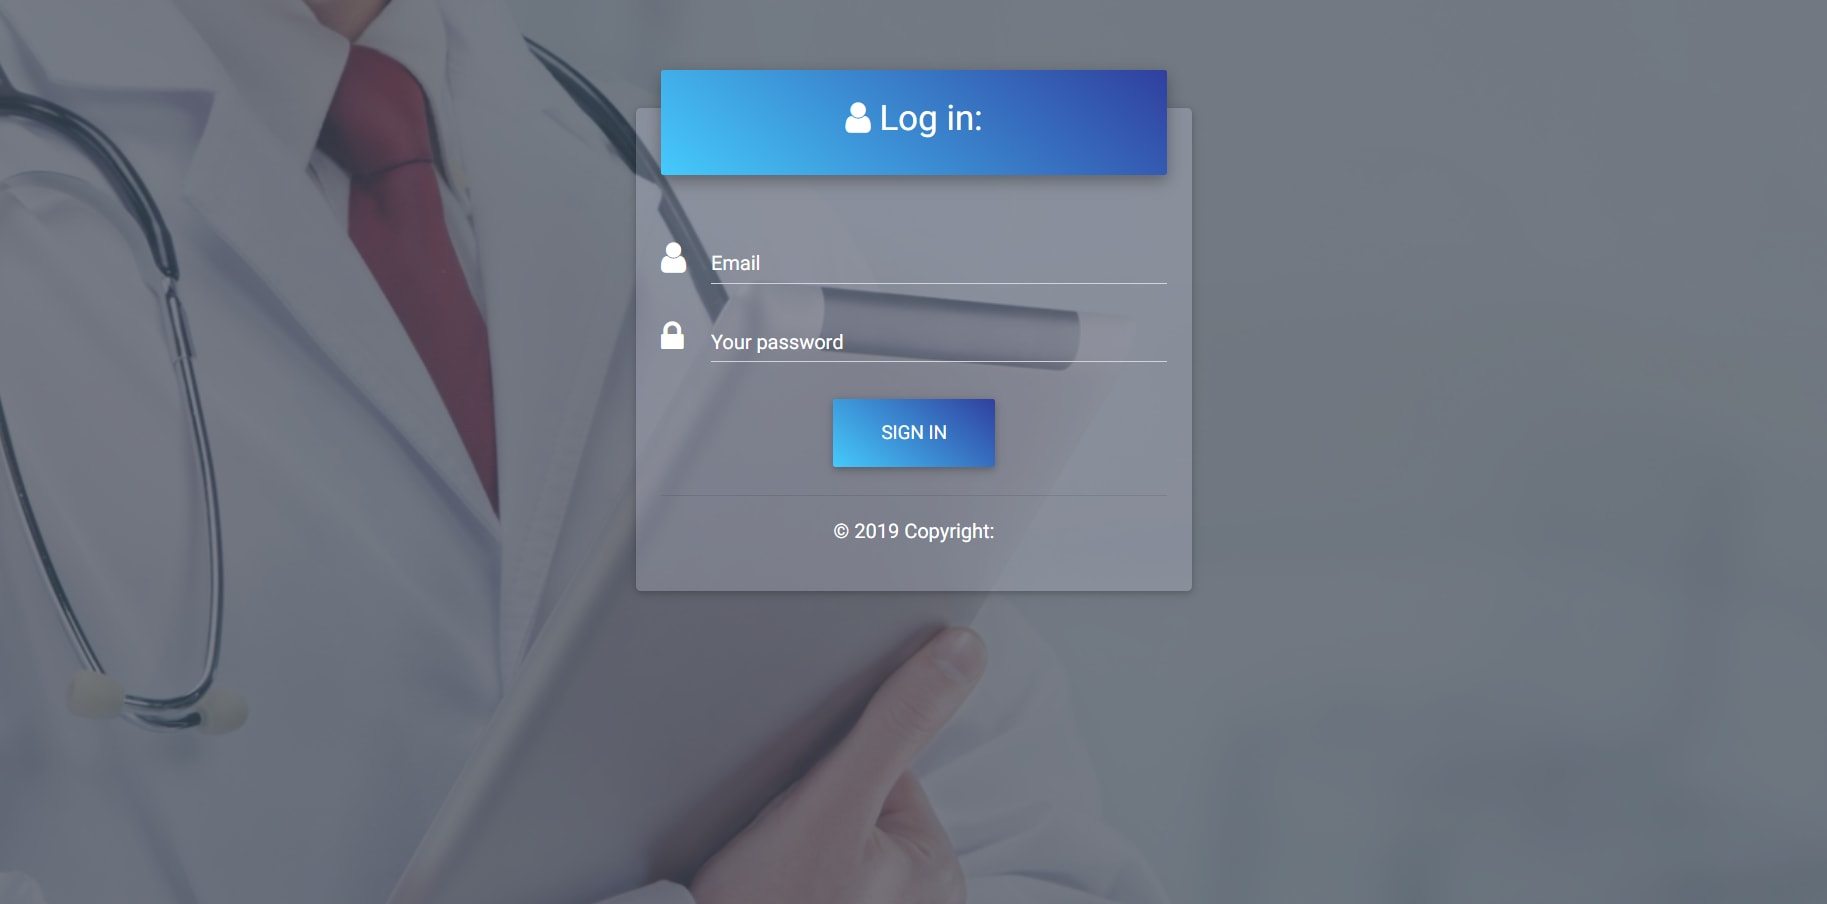 image of Hospital Information system